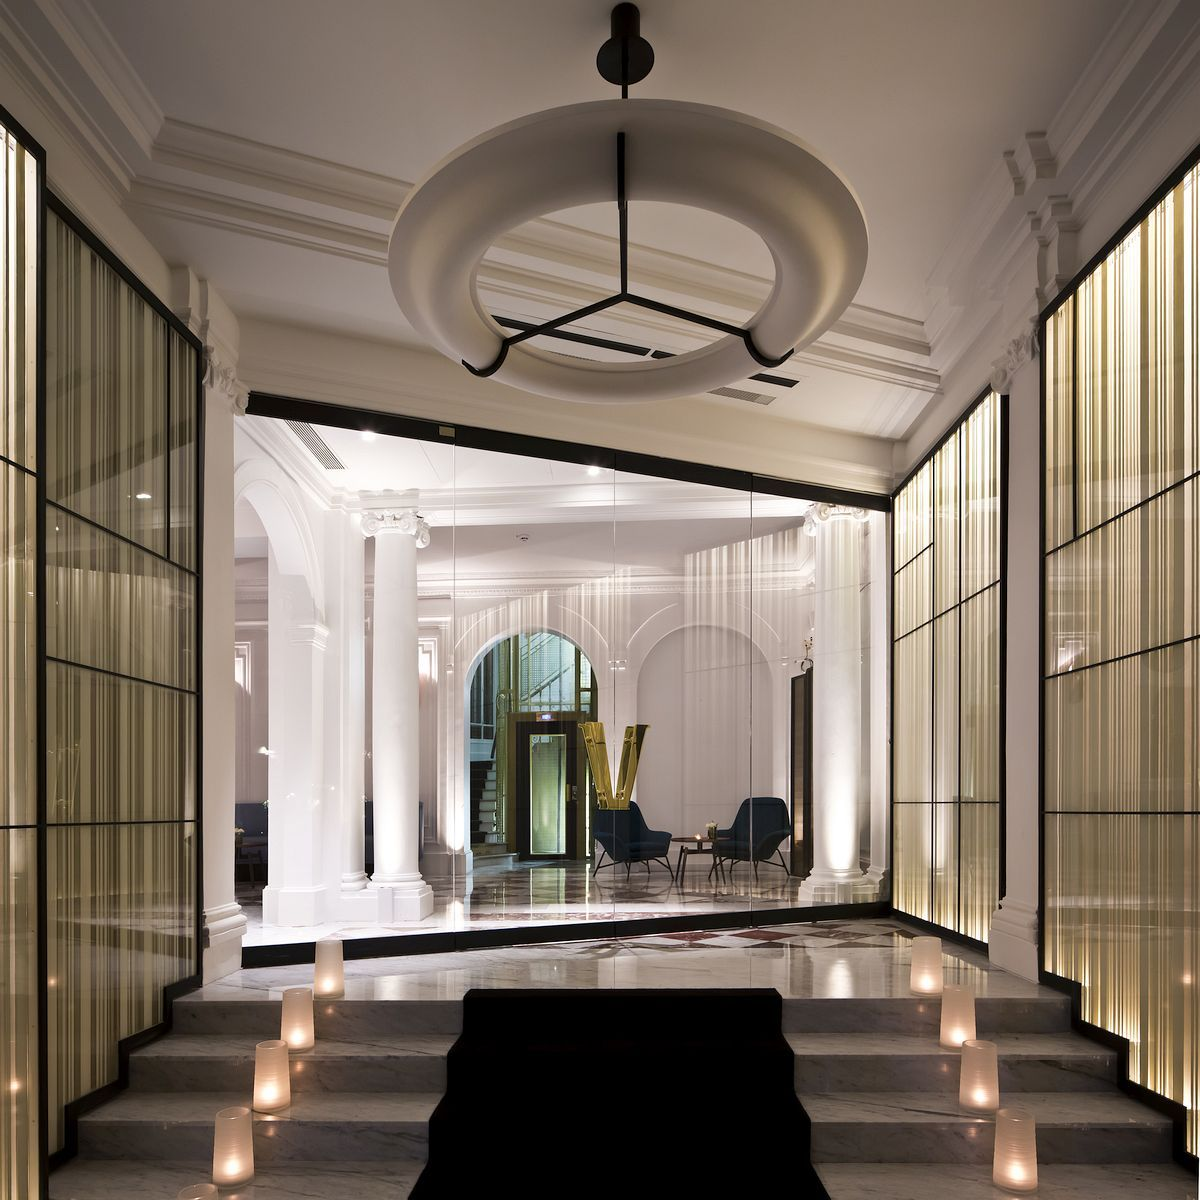 Hotel vernet paris france a stone s throw from in for Hotel design paris 8